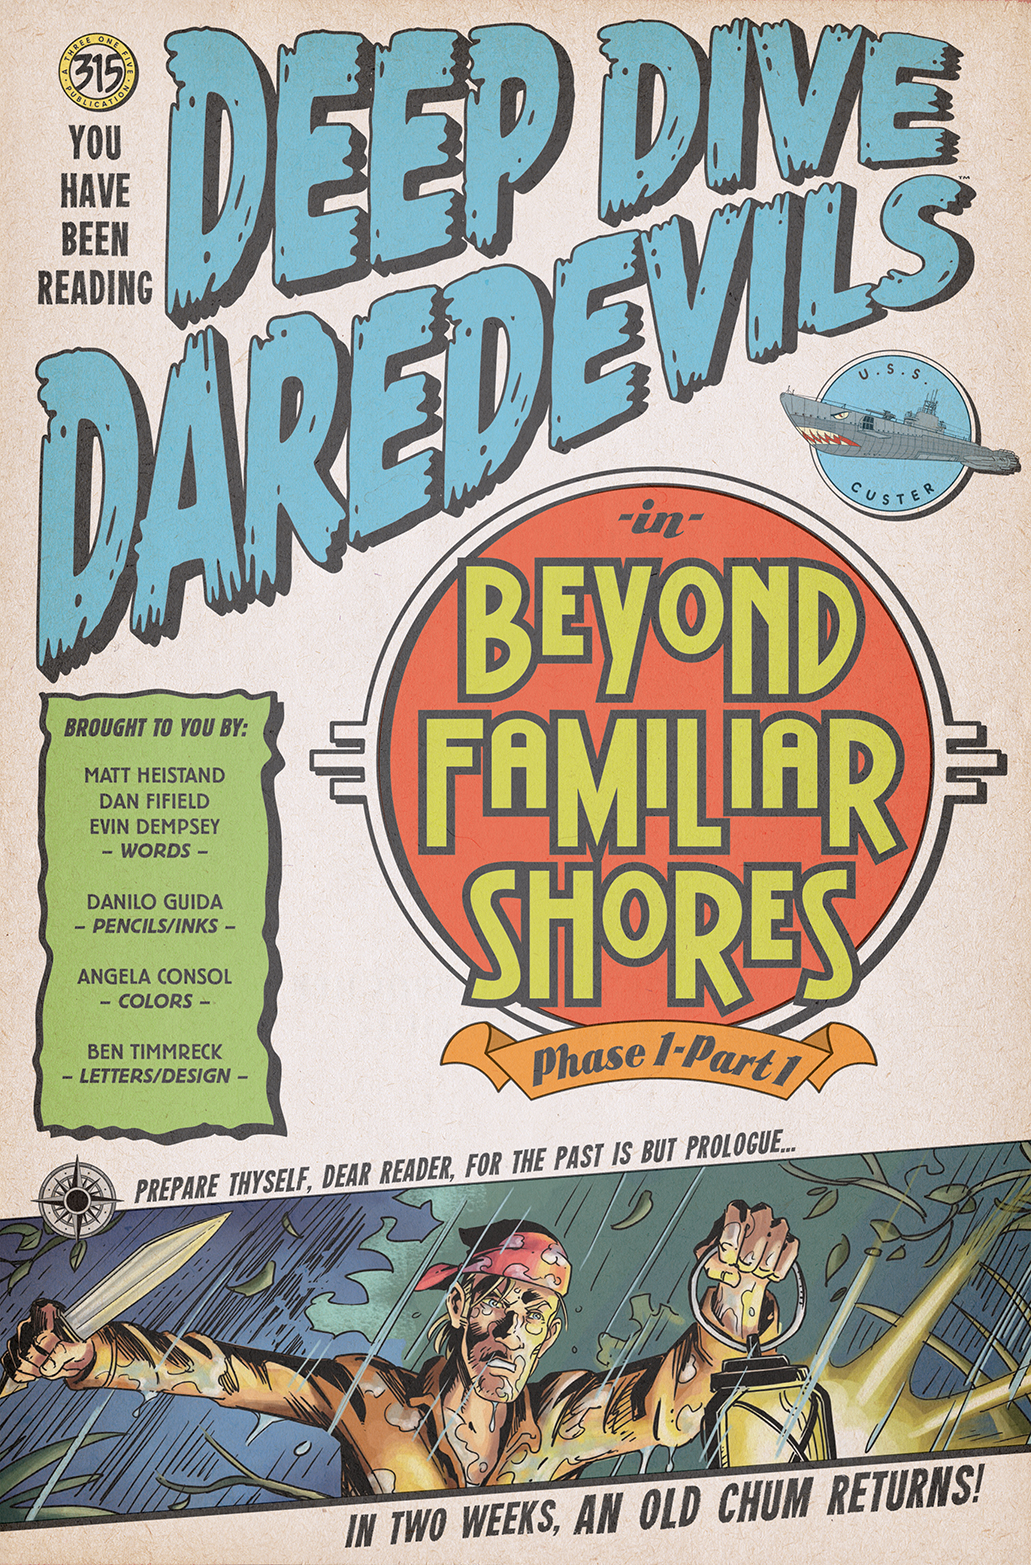 Beyond Familiar Shores – Titles/Credits